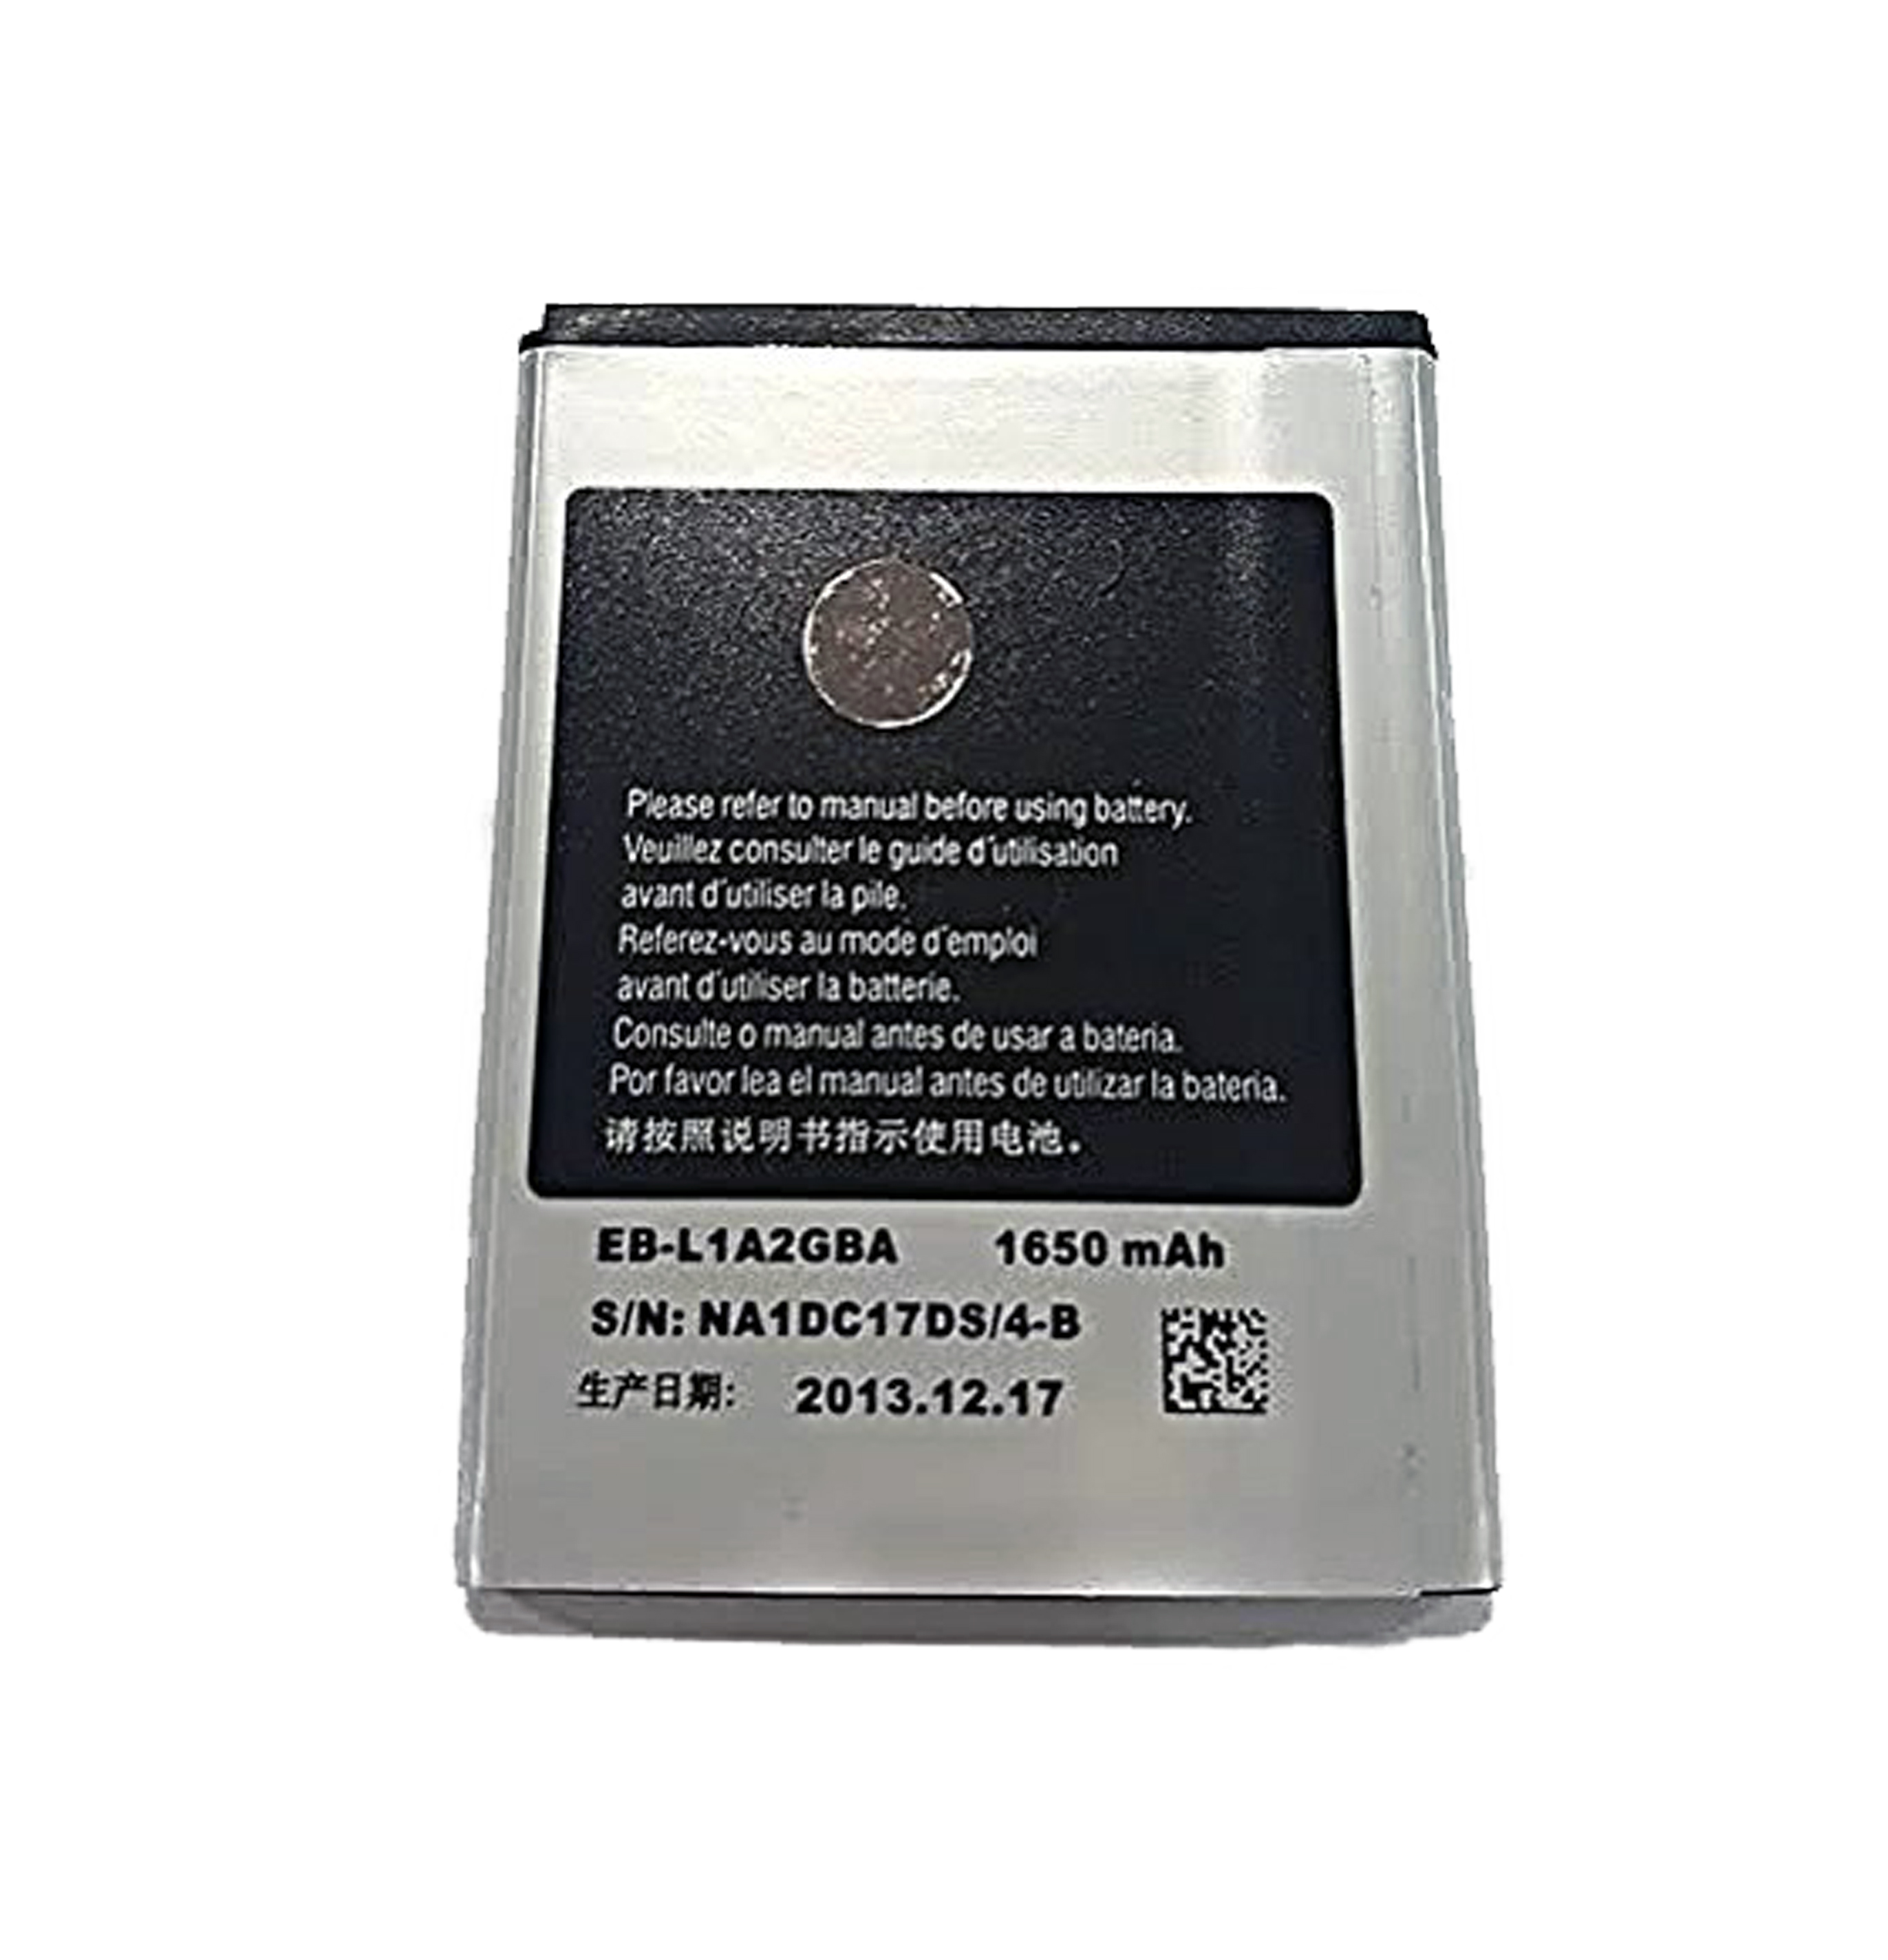 World Star ™ Replacement Battery EB-L1A2GBA 1650mAh 3.85V for Samsung Galaxy S II / SGH-i777 I9100 (2 Year Limited Warranty)